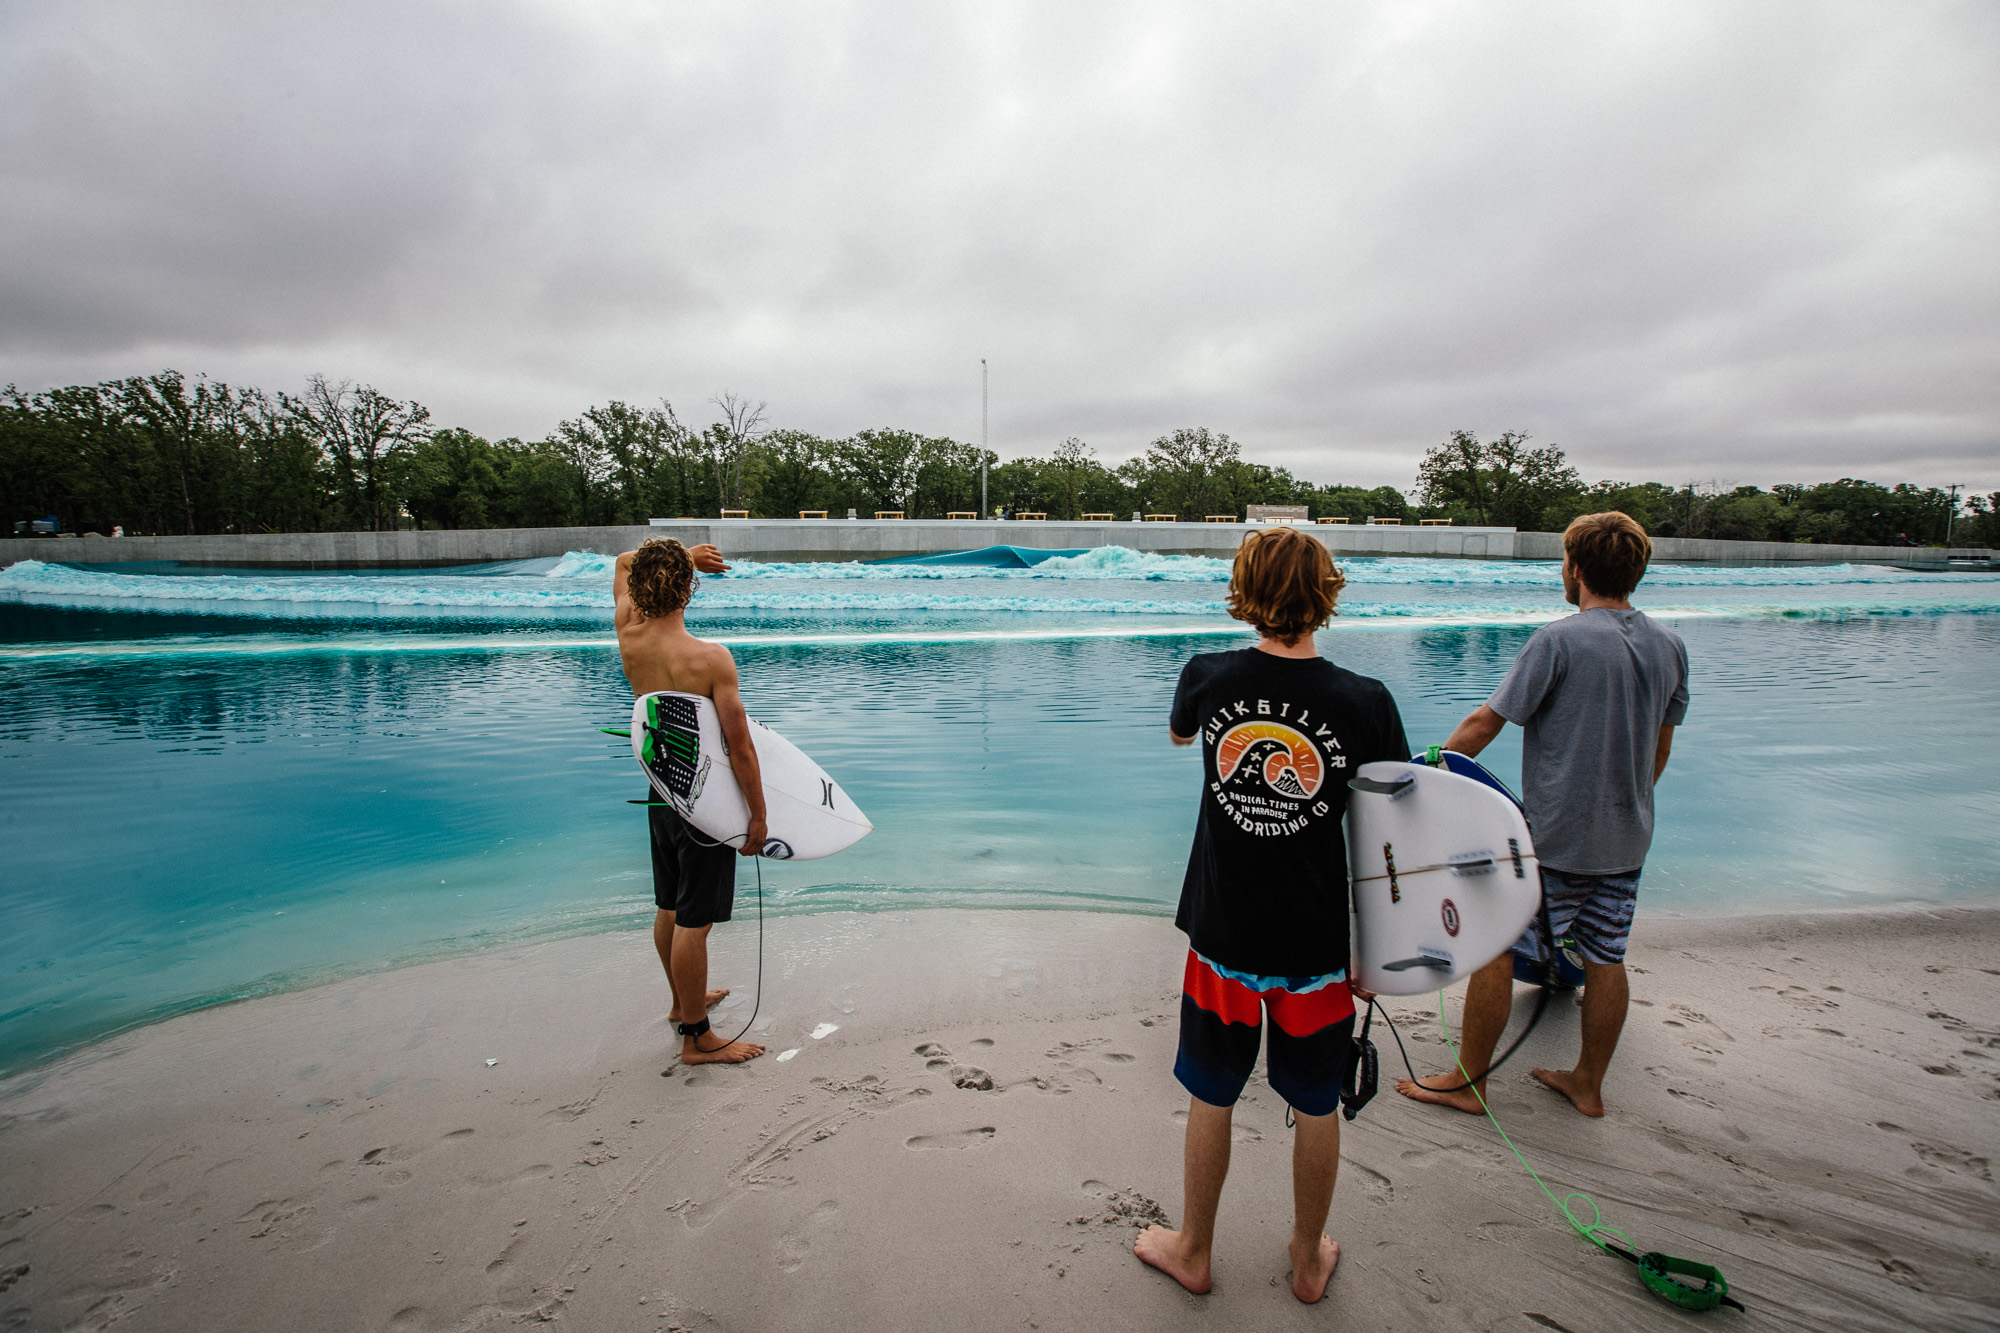 Waco Wavepool Closed While CDC Tests for